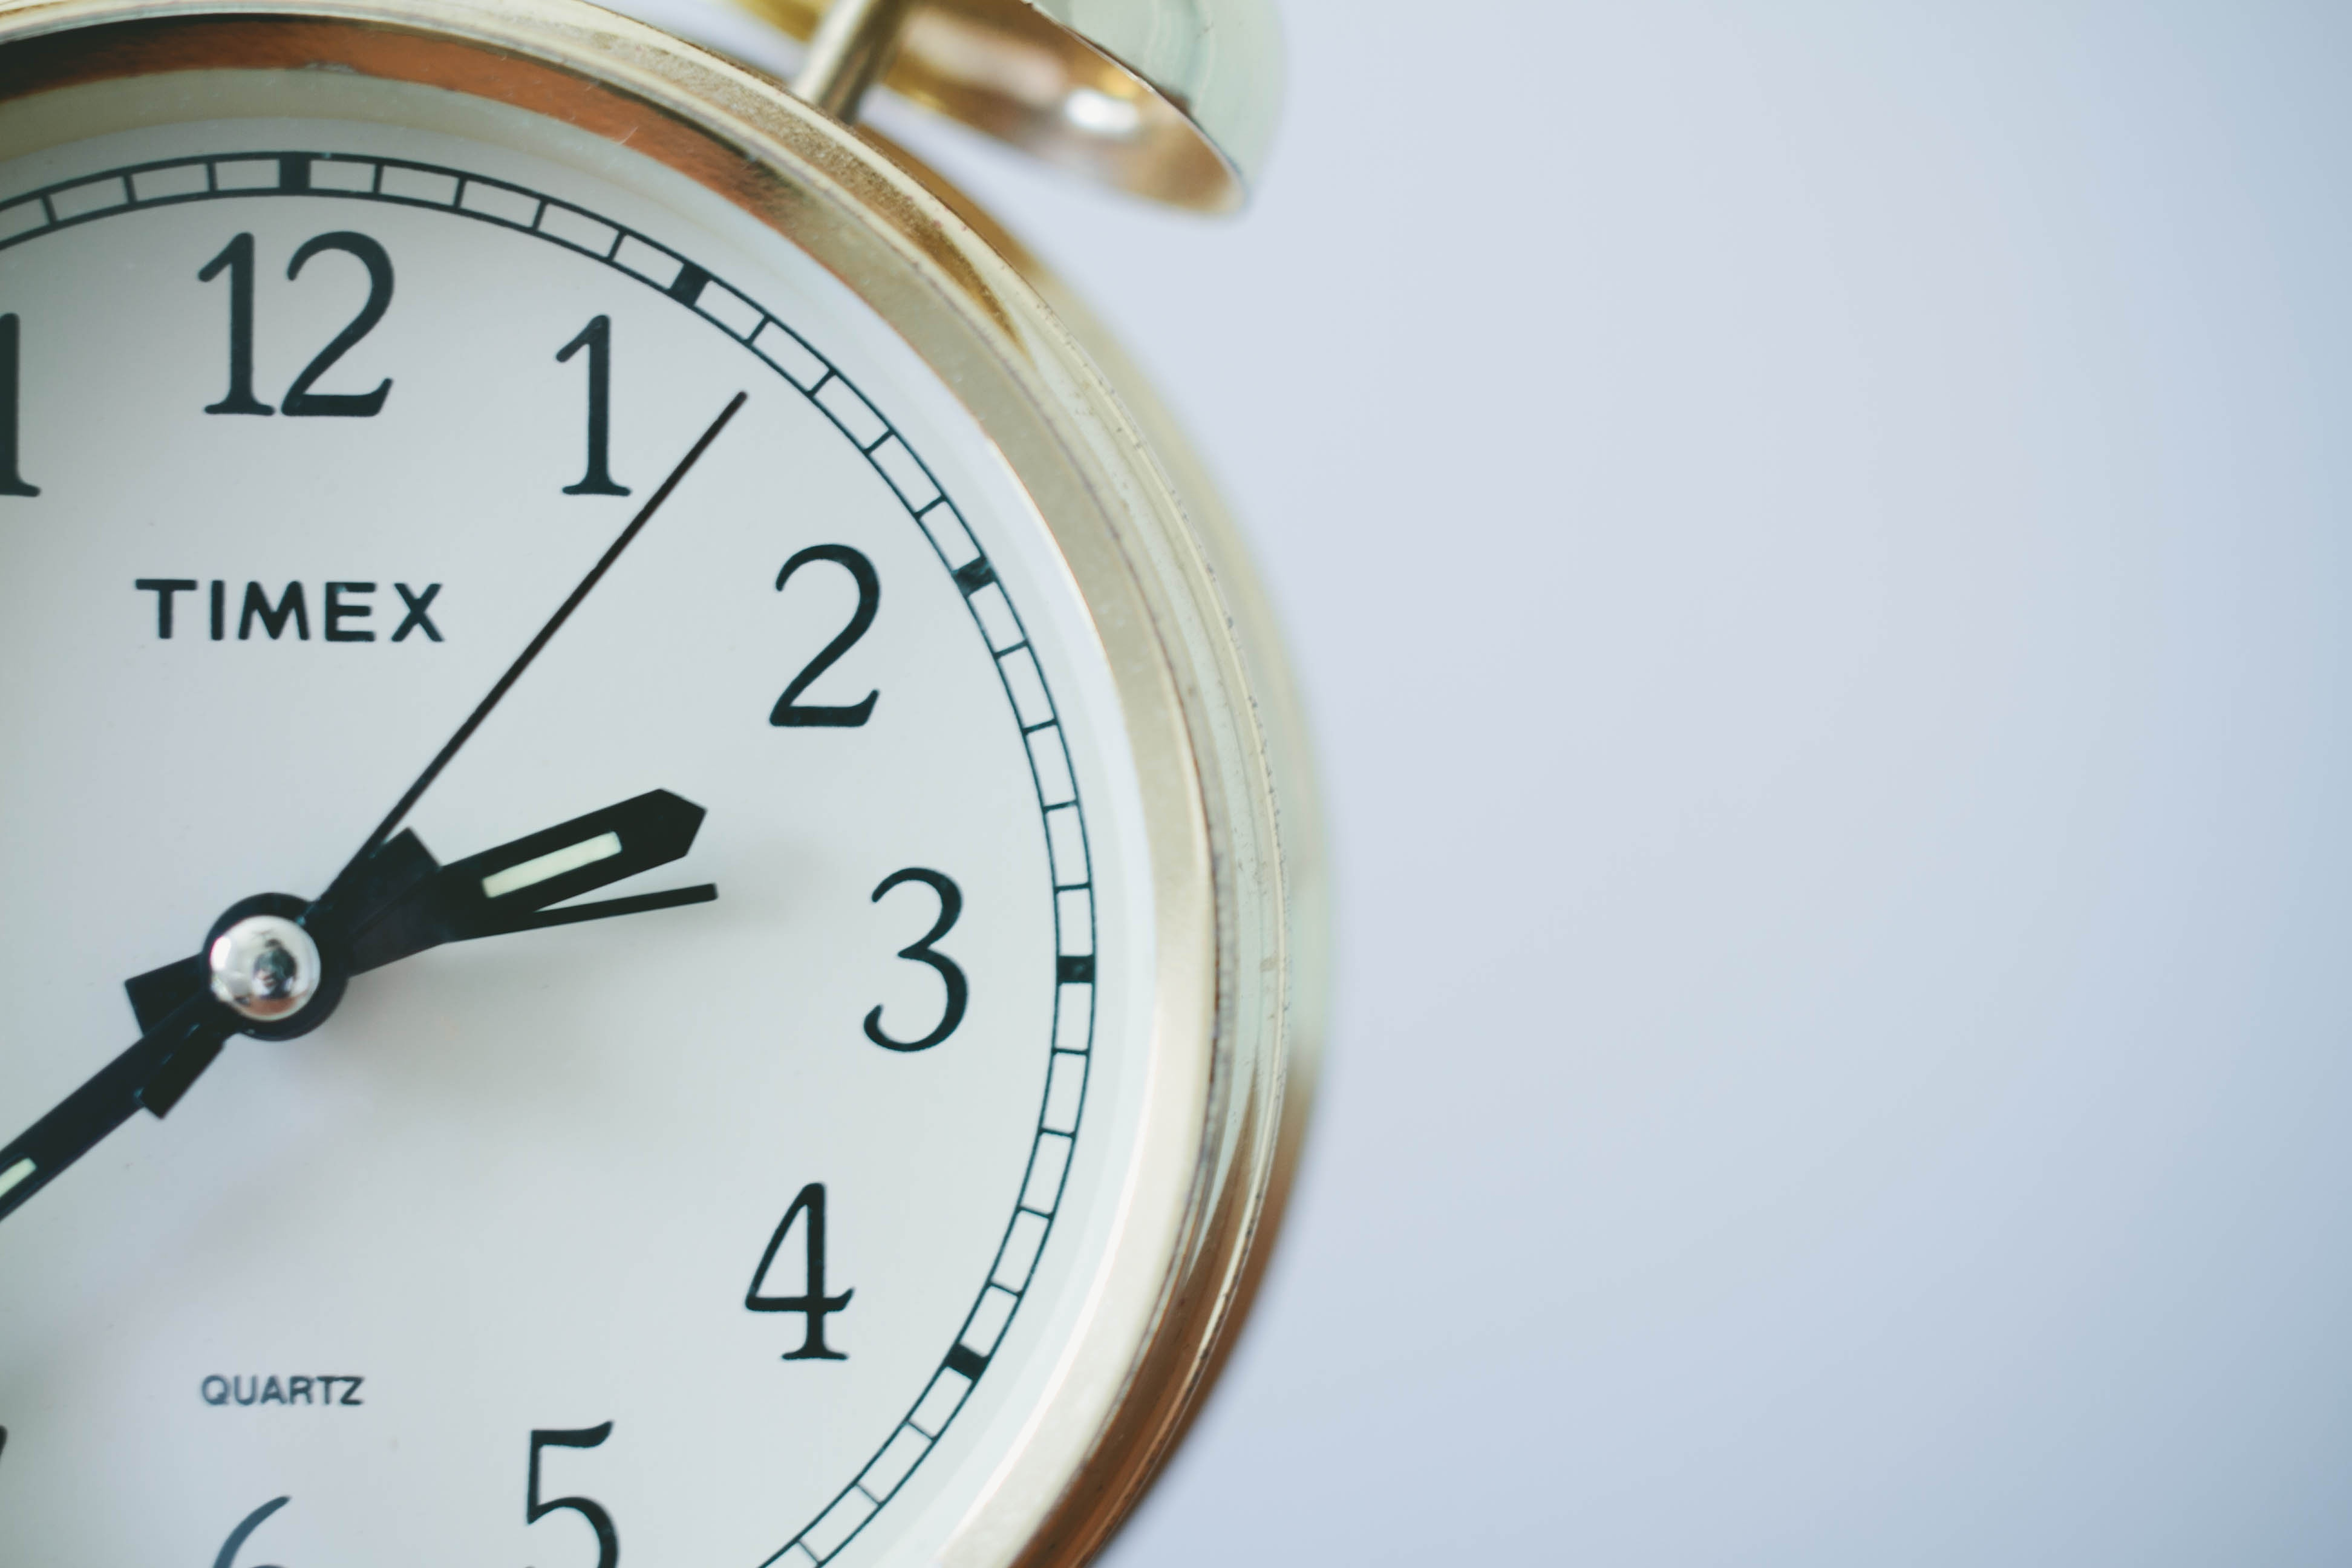 DOL fiduciary rule for RIA firms is officially delayed to June 9, 2017